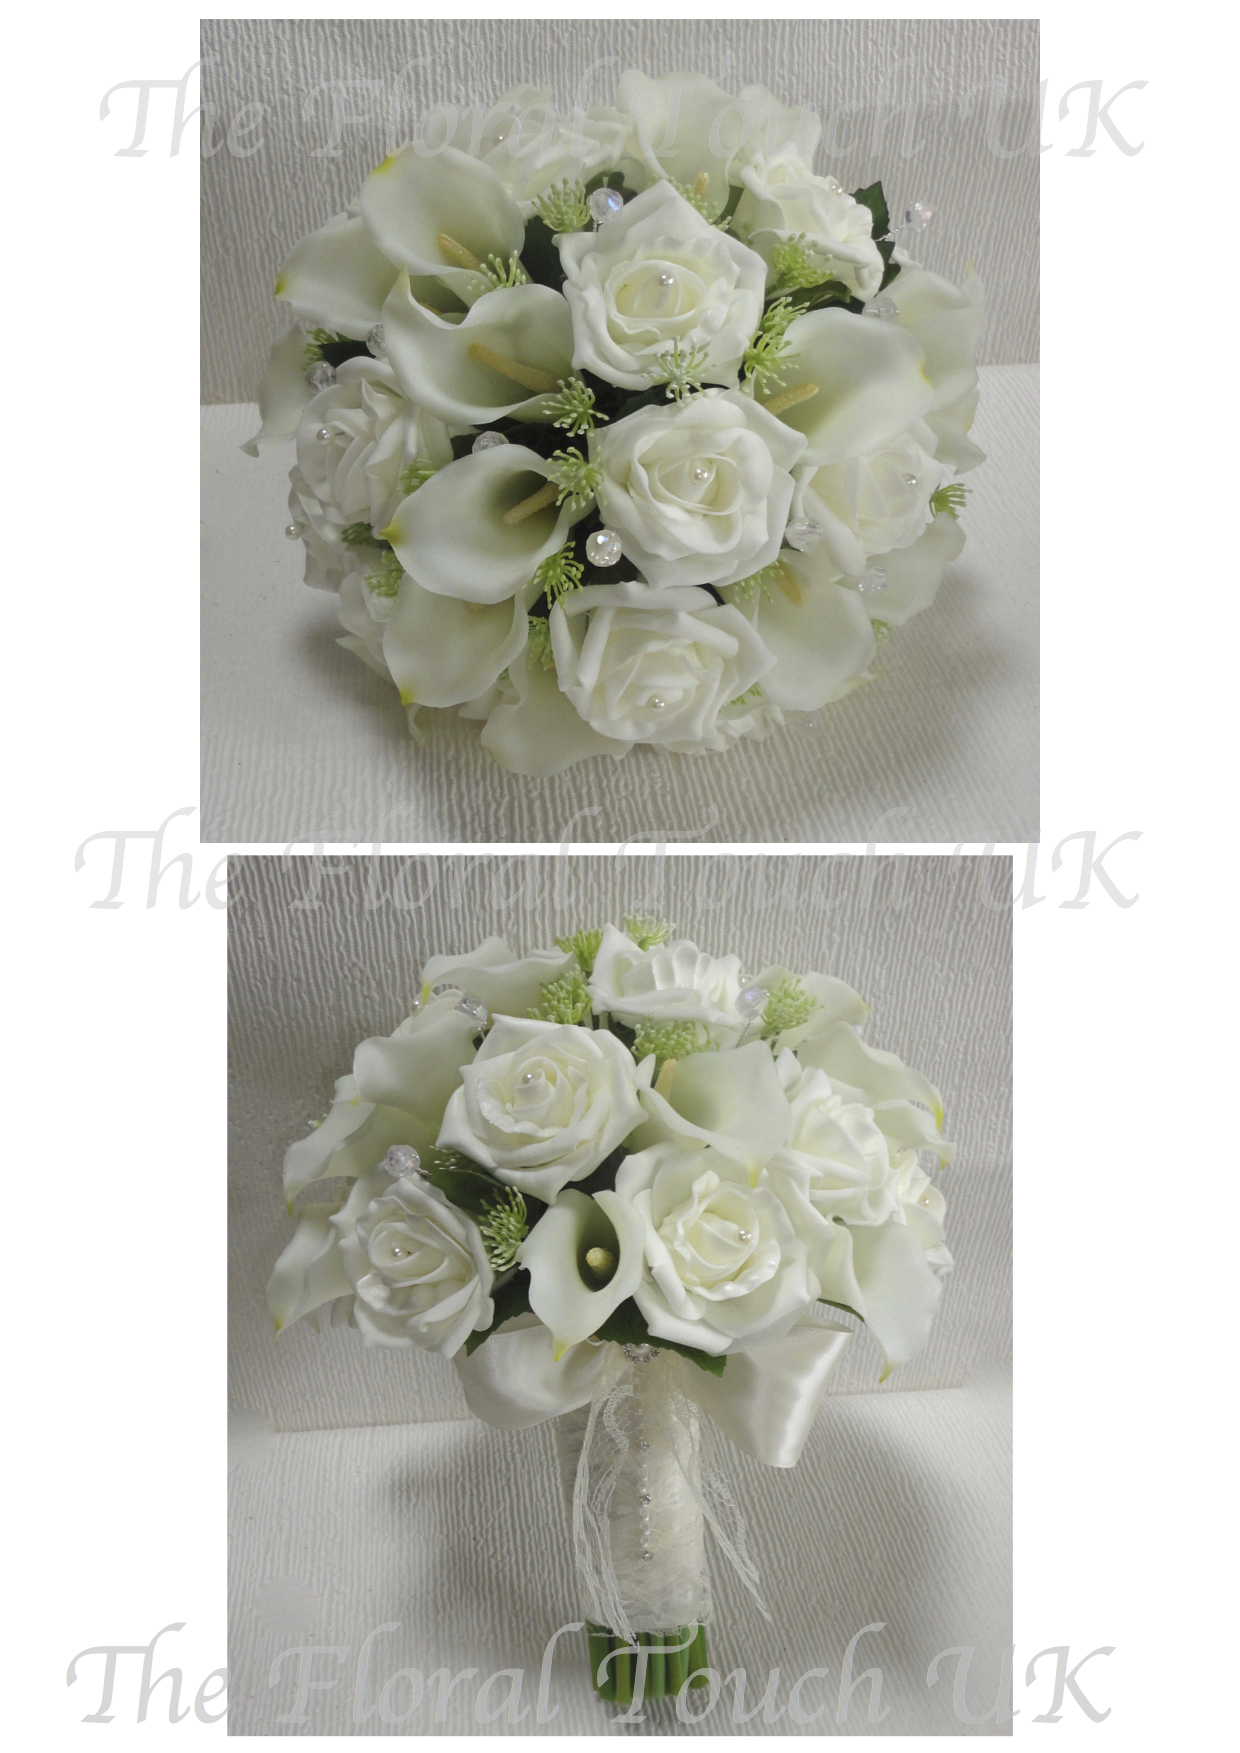 Natural touch flowers wedding bouquets flowers healthy ivory real touch calla lily lifelike rose wedding bouquet beautiful real touch calla liles with ivory izmirmasajfo